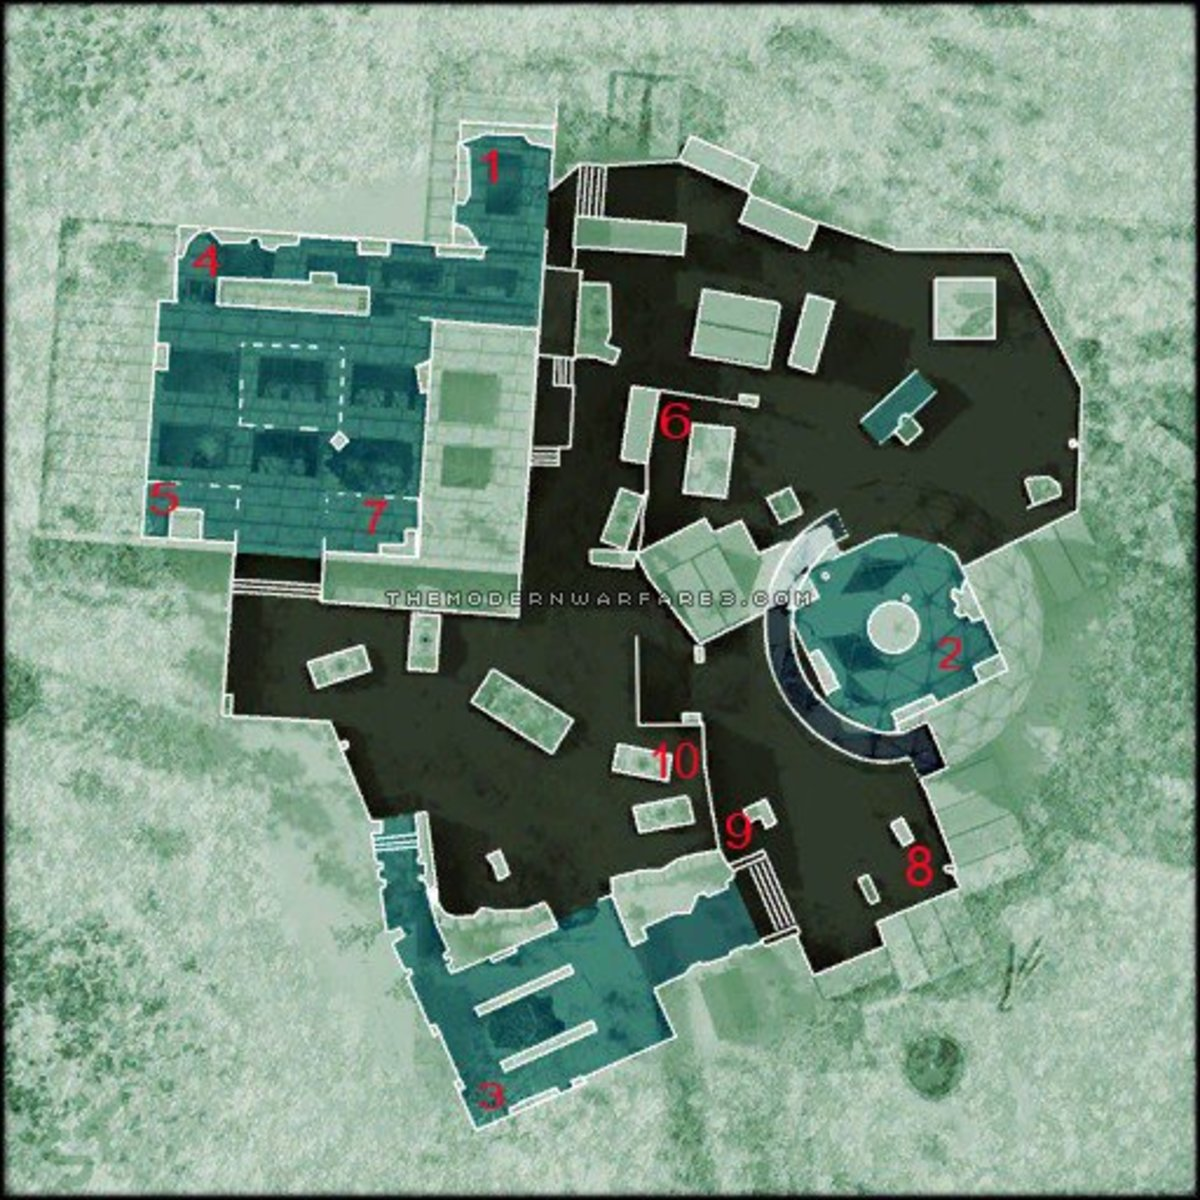 A layout of some great camping spots on the Modern Warfare 3 map dome. Disclaimer: I do not own the rights to this image. Visit the site of the original image via. http://www.themodernwarfare3.com/mw3/multiplayer-maps/dome/